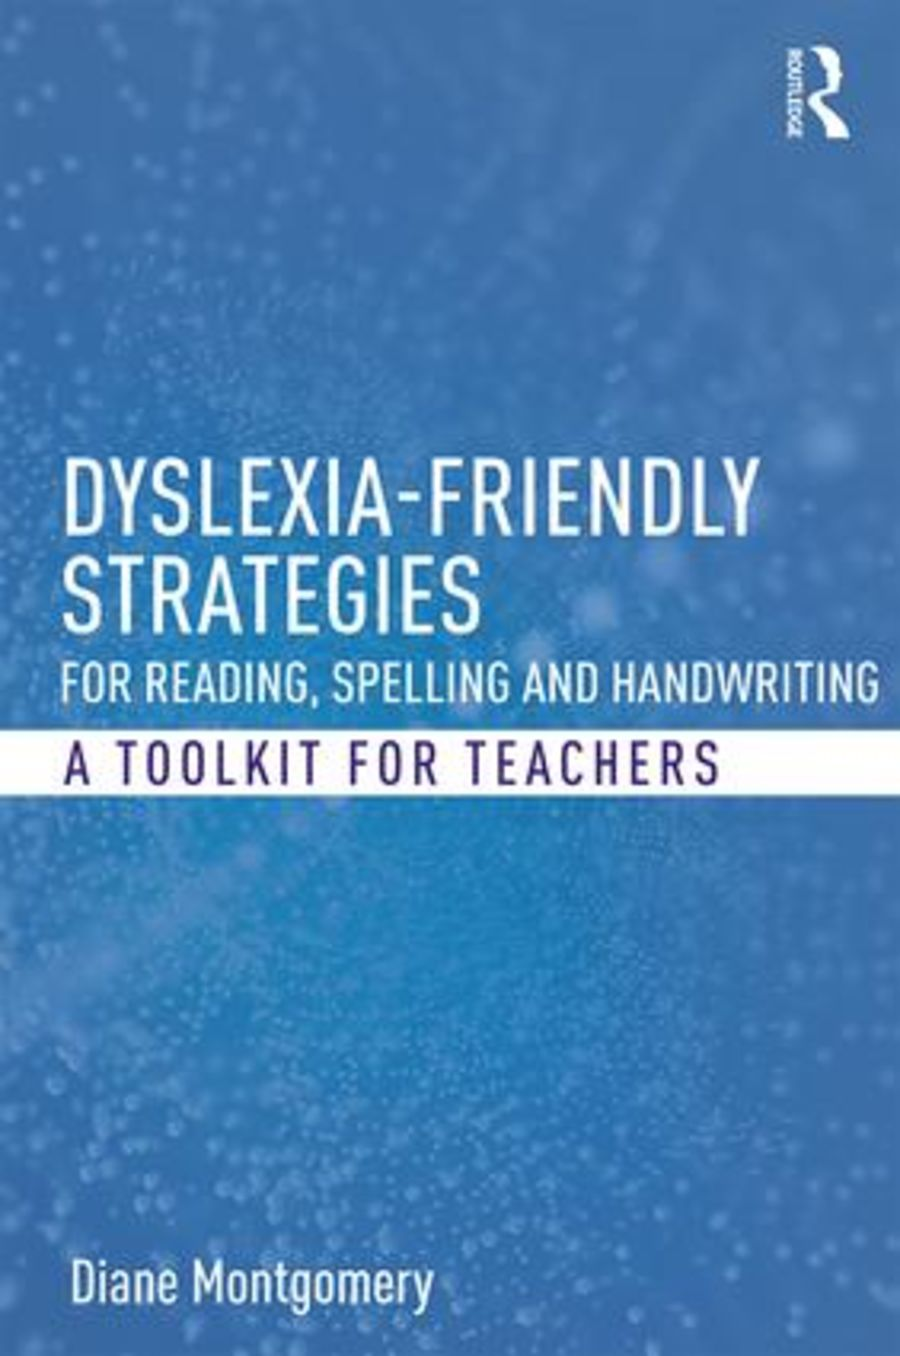 Dyslexia Friendly Strategies for Reading, Spelling and Handwriting